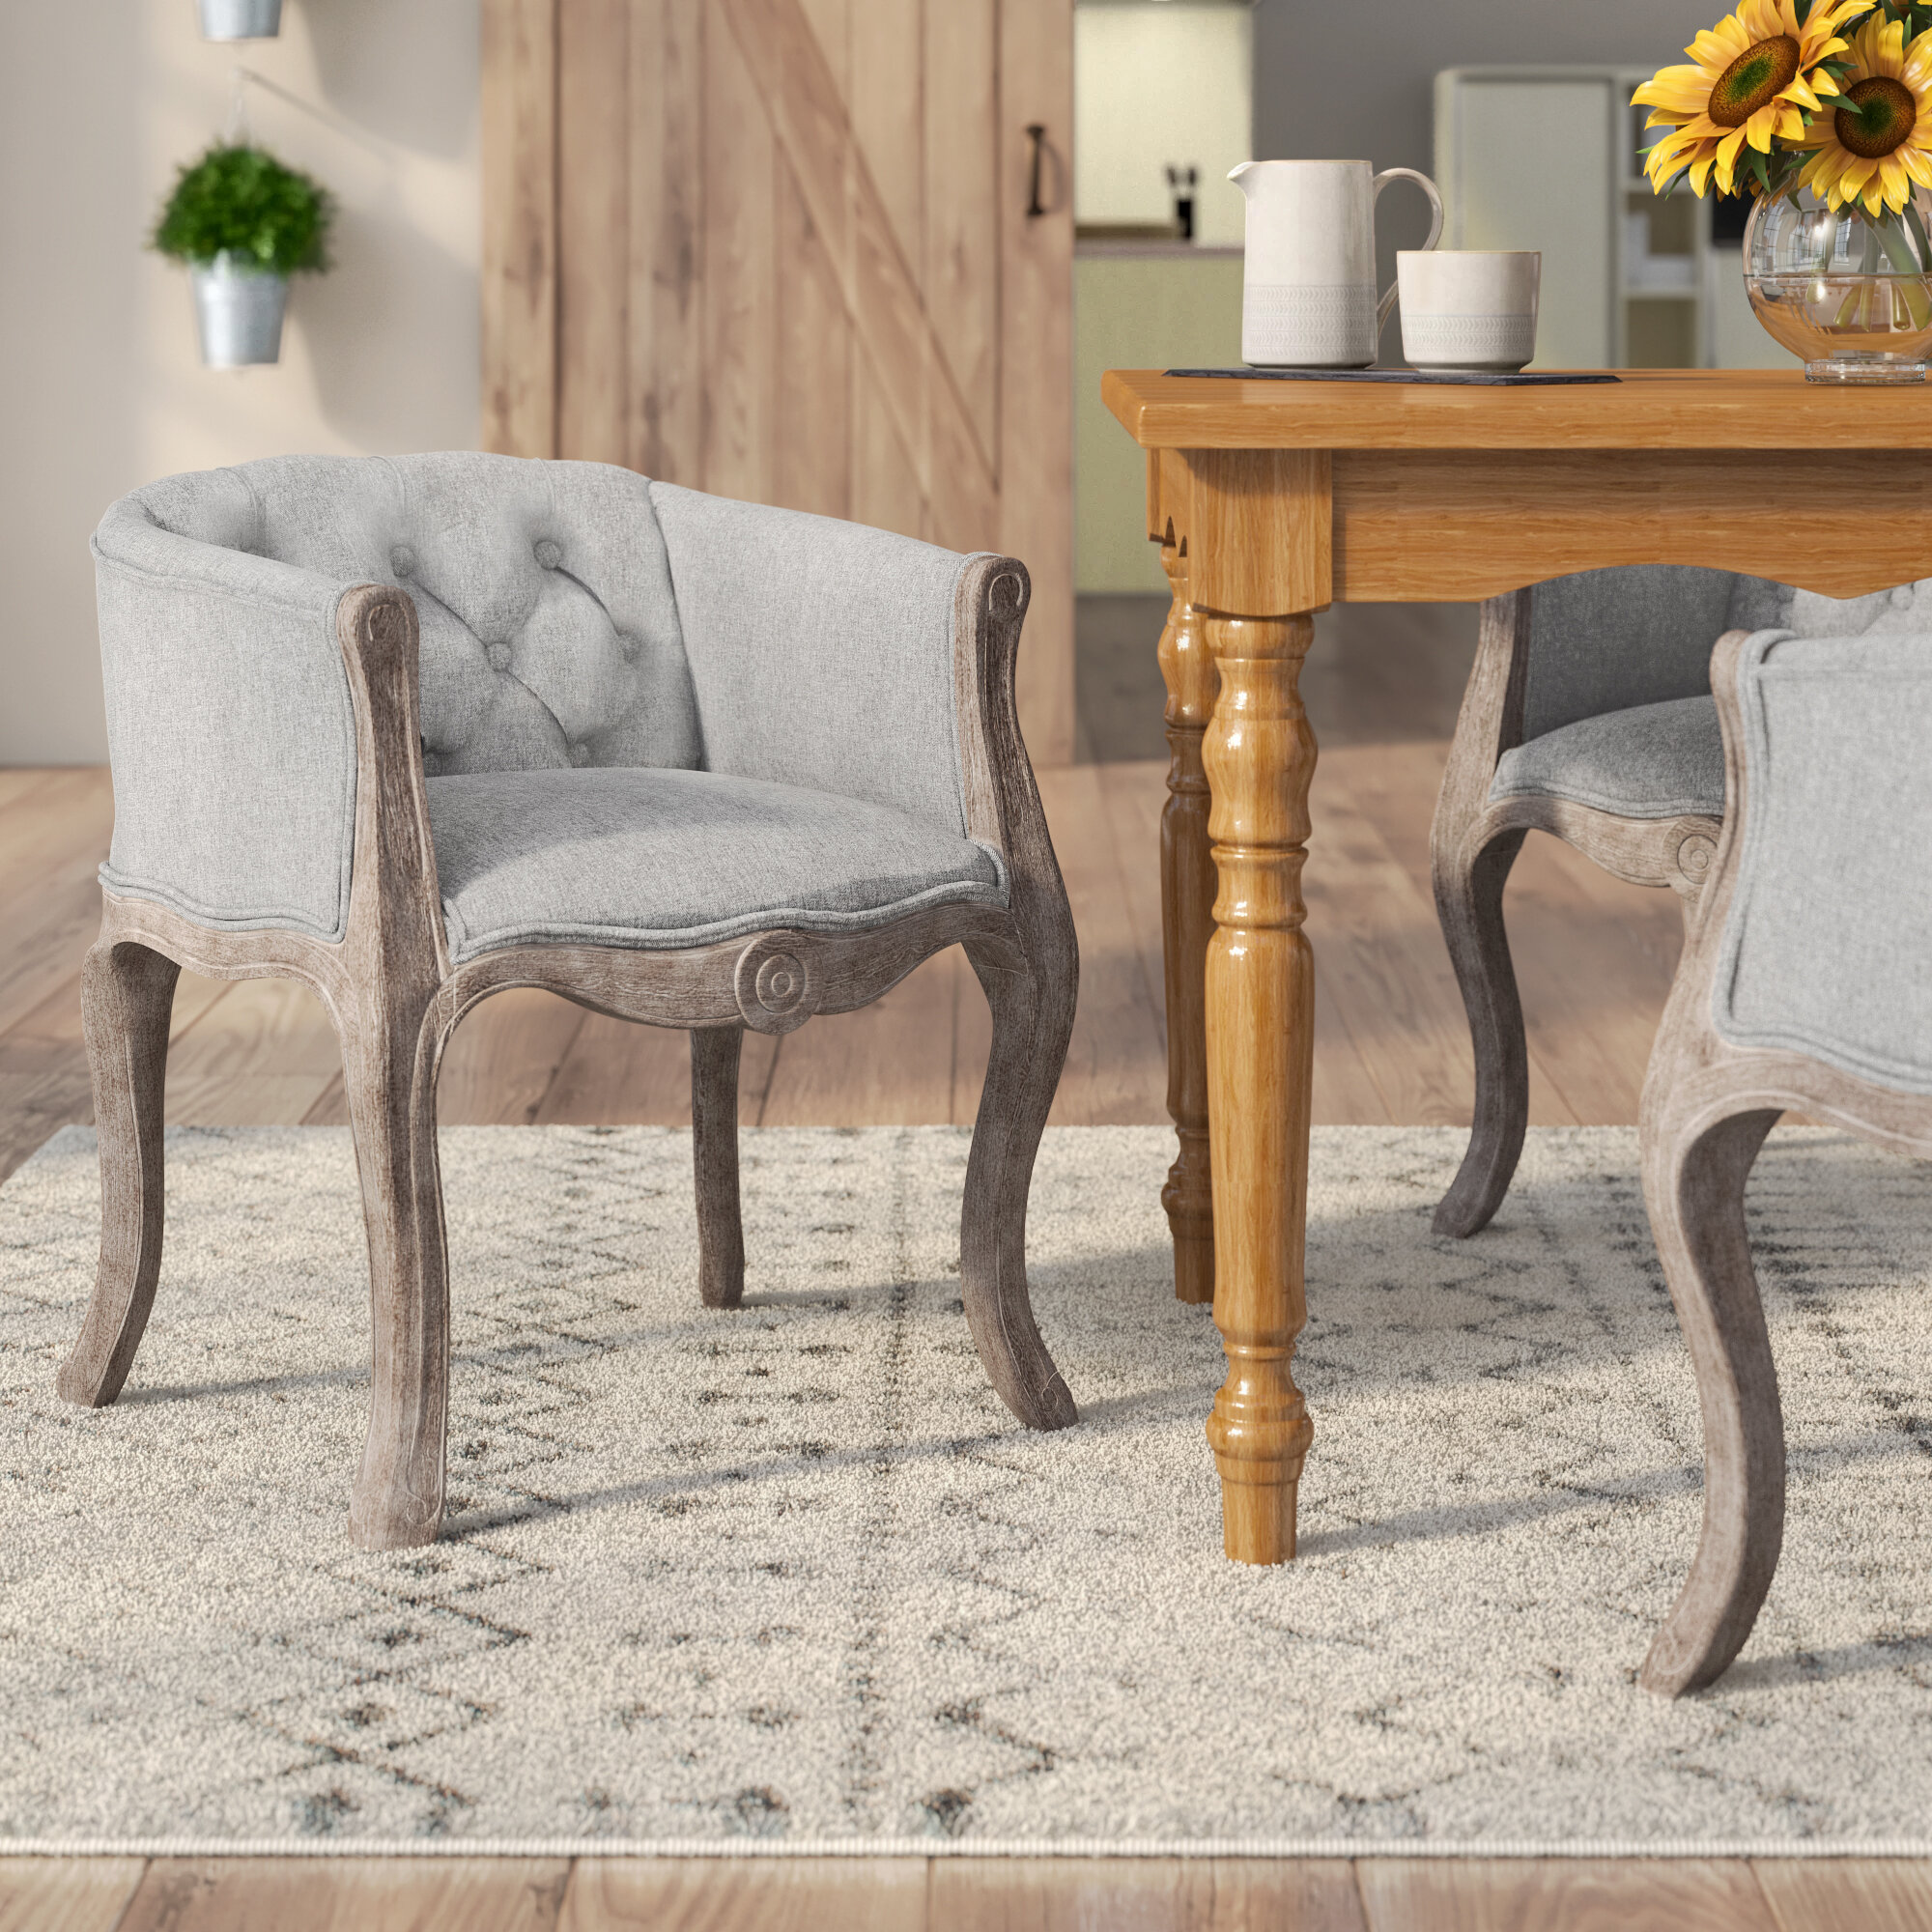 Ophelia & Co. Vasques Vintage French Upholstered Dining ...